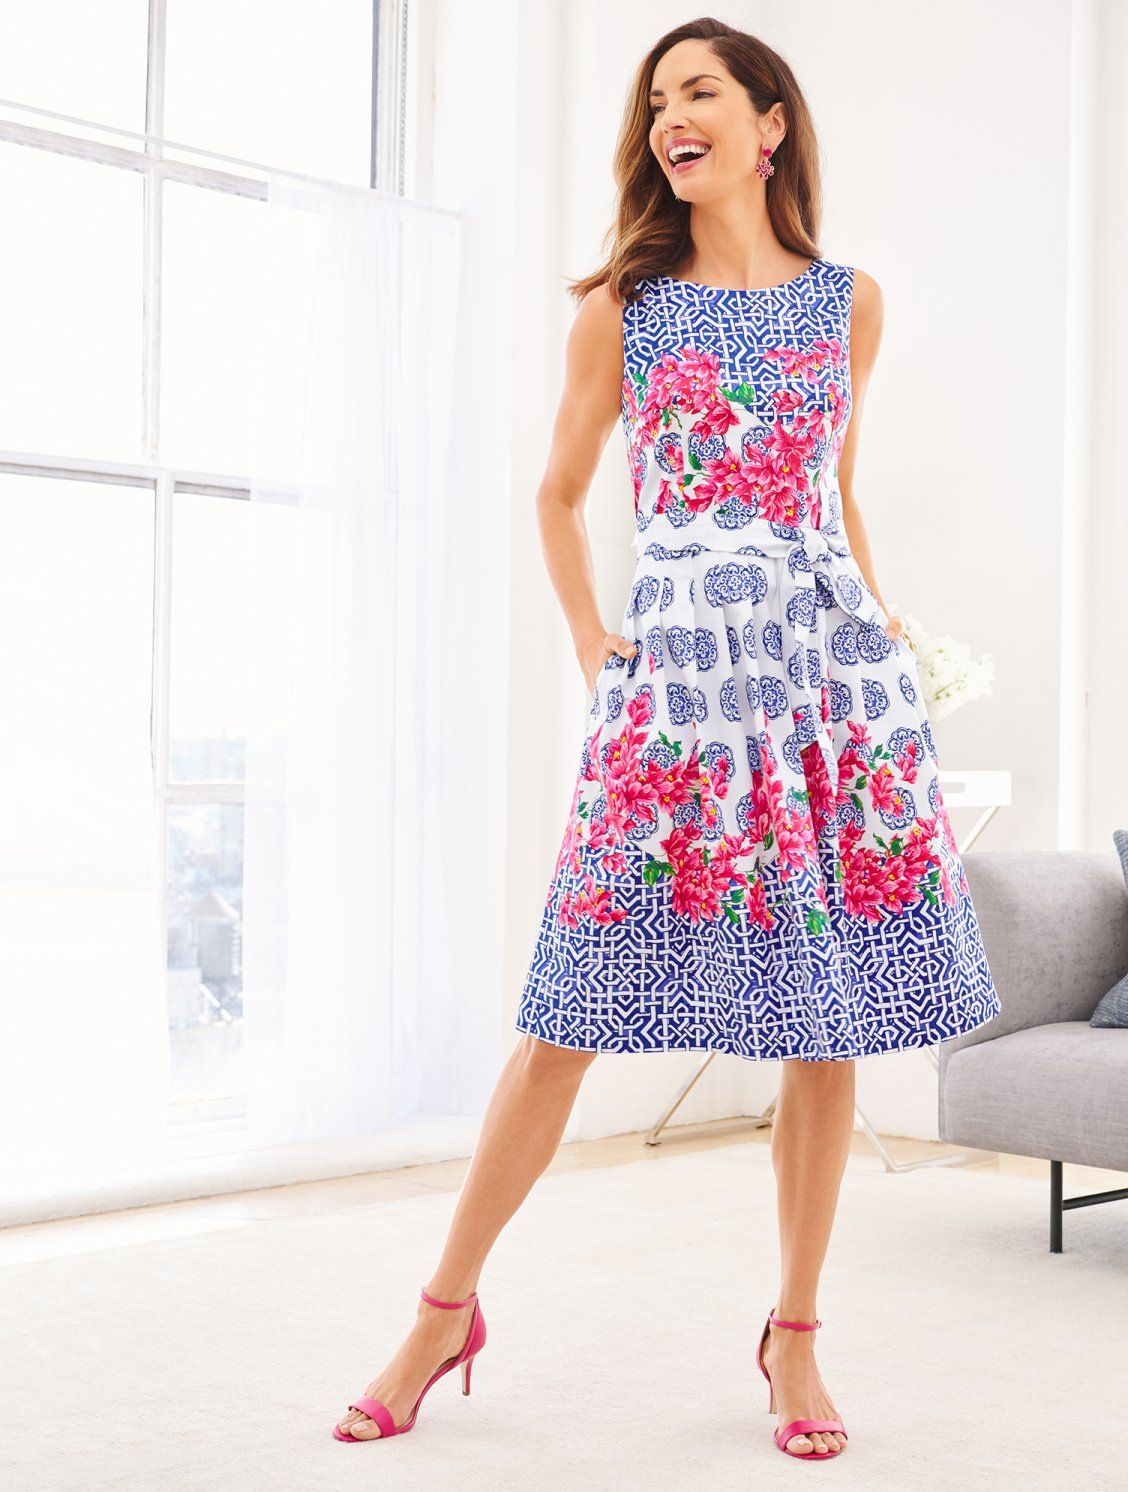 A Beautiful Fit Flare Dress Inspired By The Floral Covered Mosaic Architecture On The Isle Of Capri A Flare Dress Casual Fit Flare Dress Fit And Flare Dress [ 1492 x 1128 Pixel ]